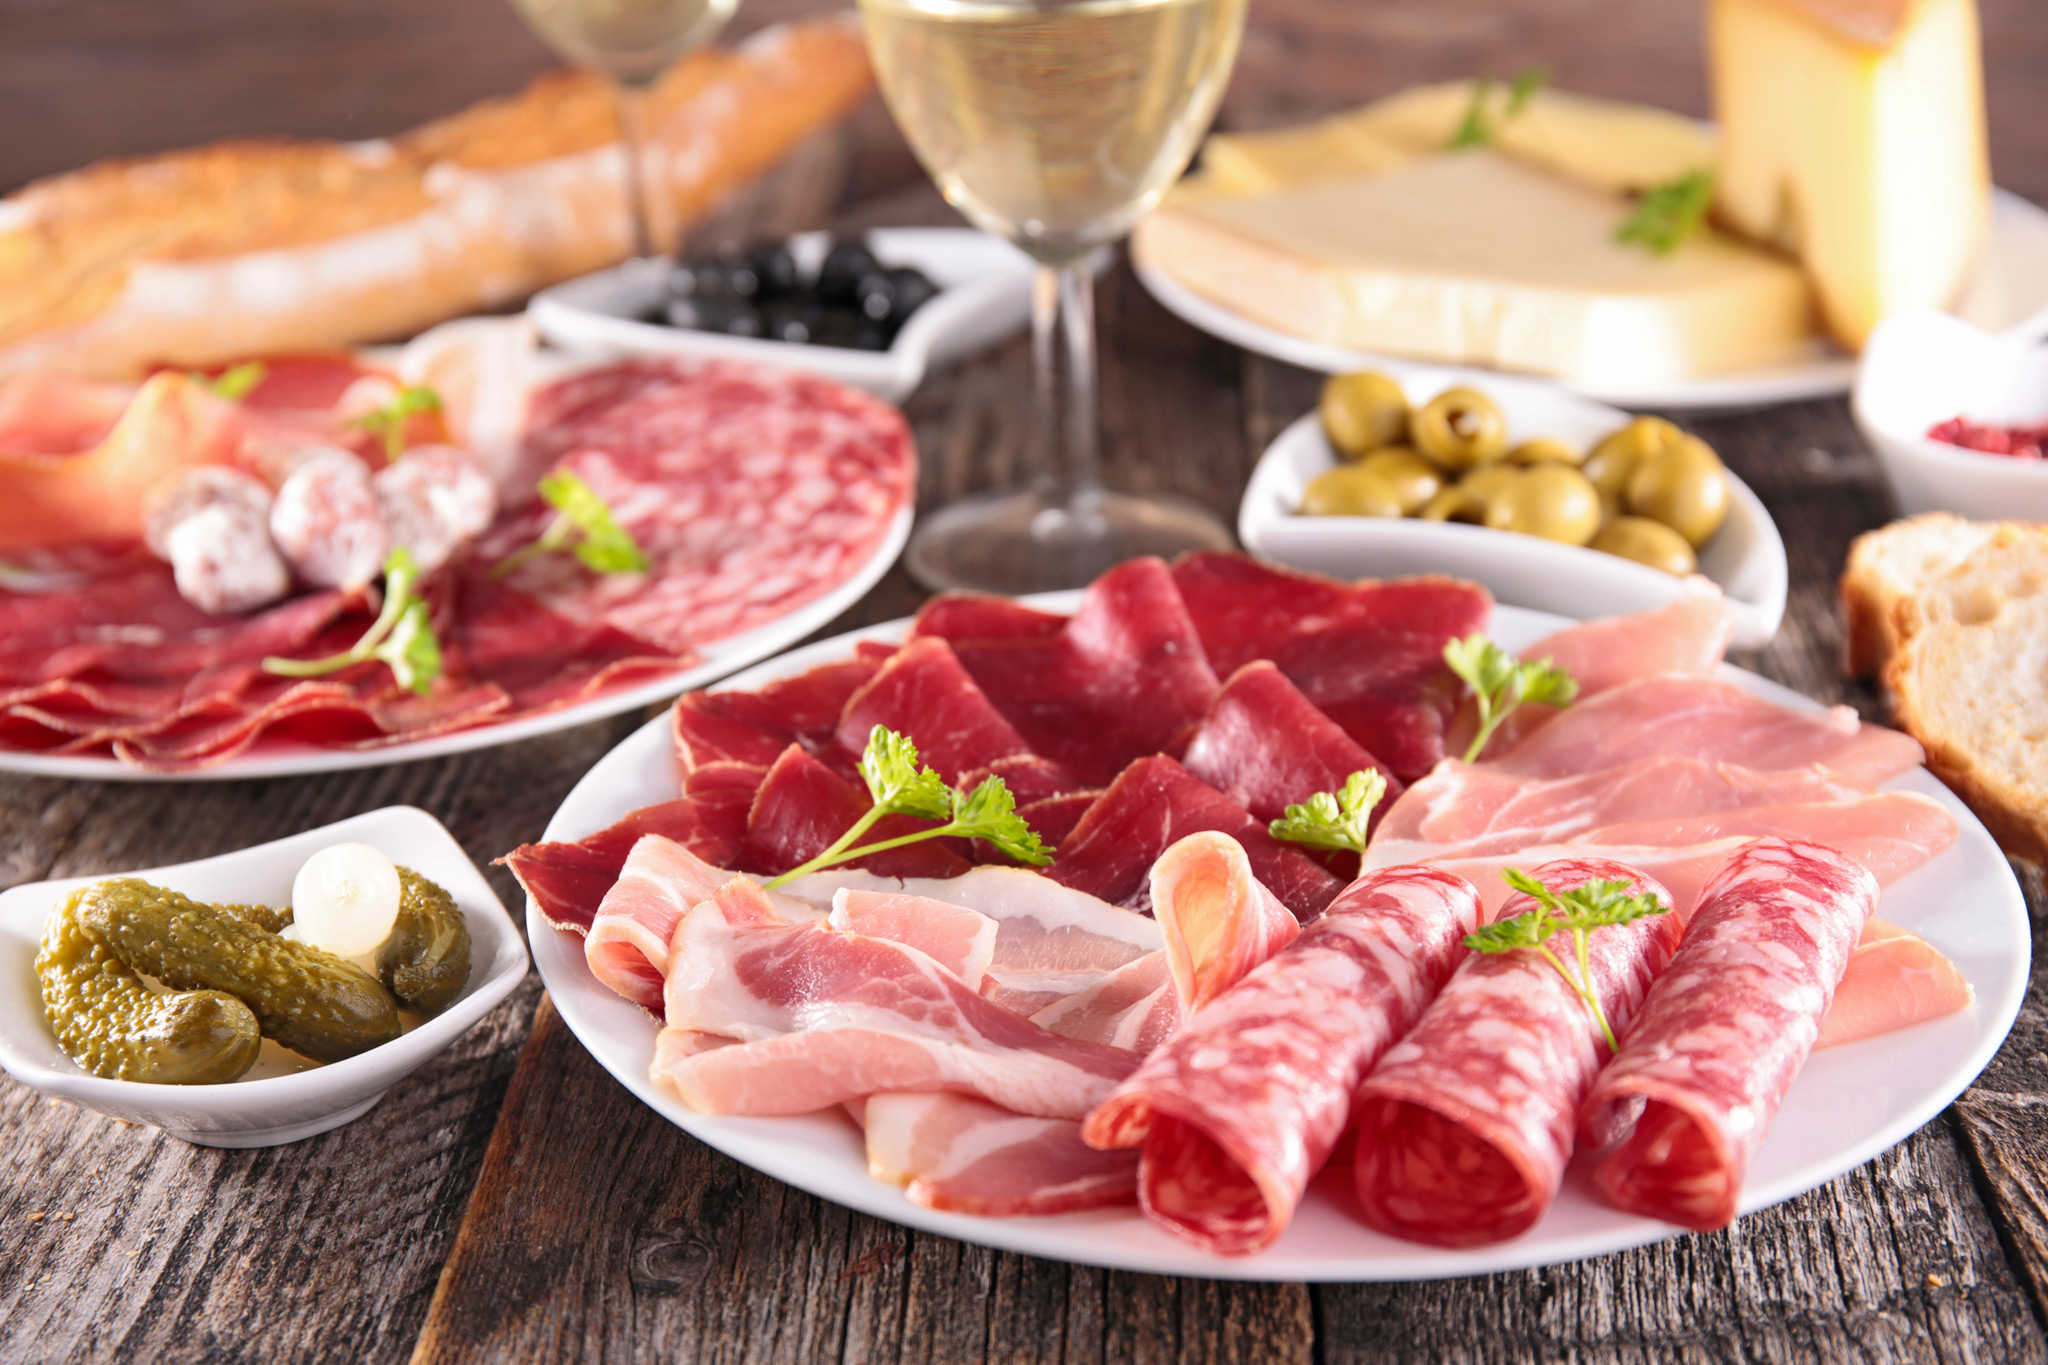 Charcuterie Meats & Cheese Board